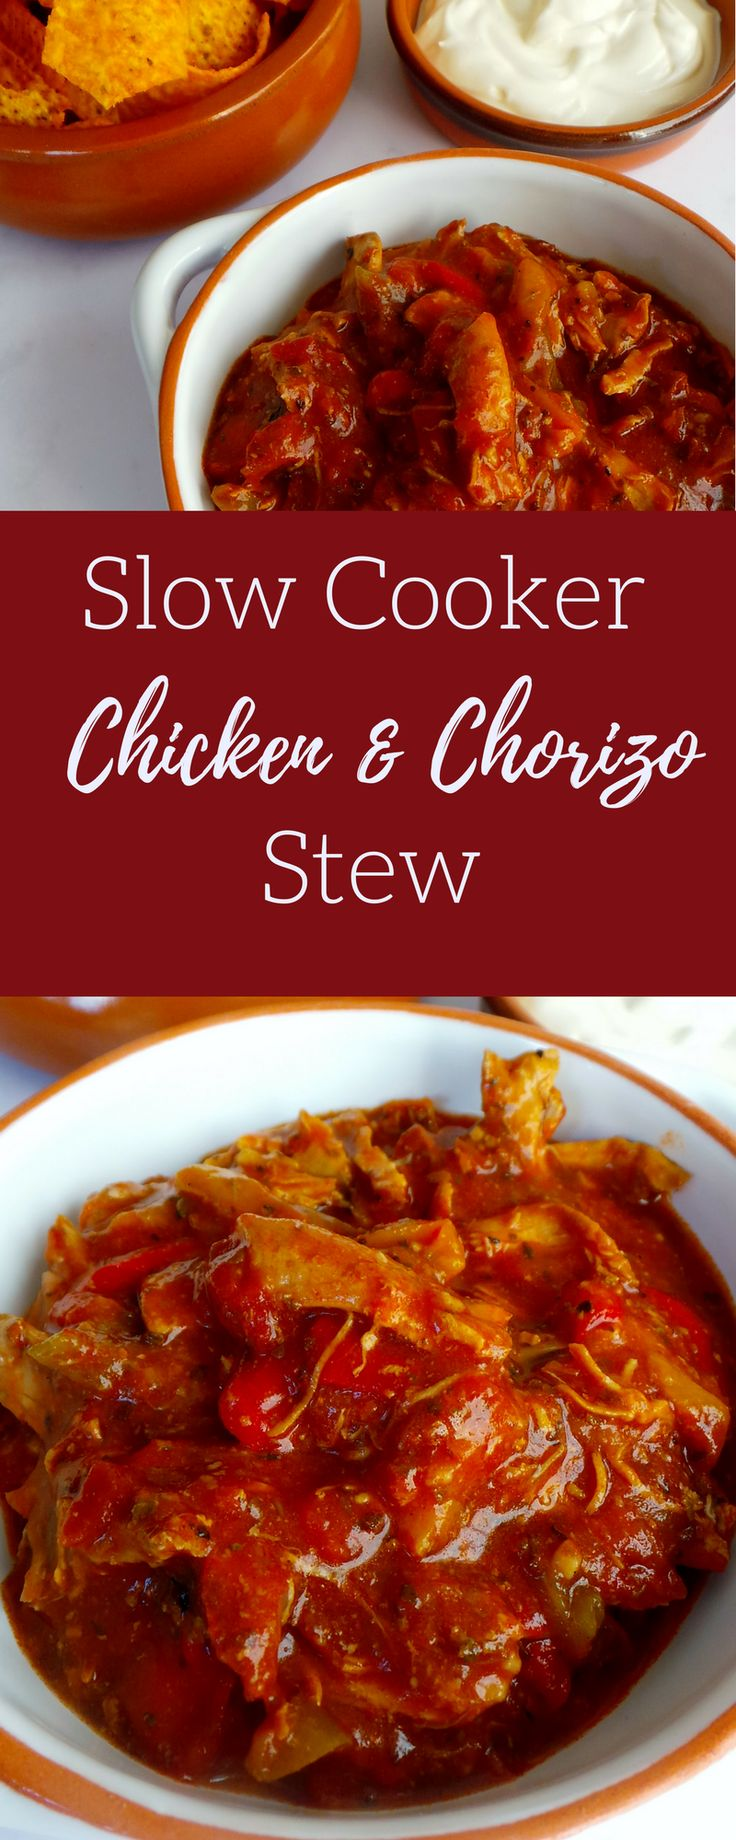 Chicken and chorizo in a rich tomato sauce with a subtle warmth, this slow cooker dish is perfect for a cold winter night served with rice or tortillas and salad and a dollop of soured cream. My love of Mexican food is no secret and I am constantly thinking of new …